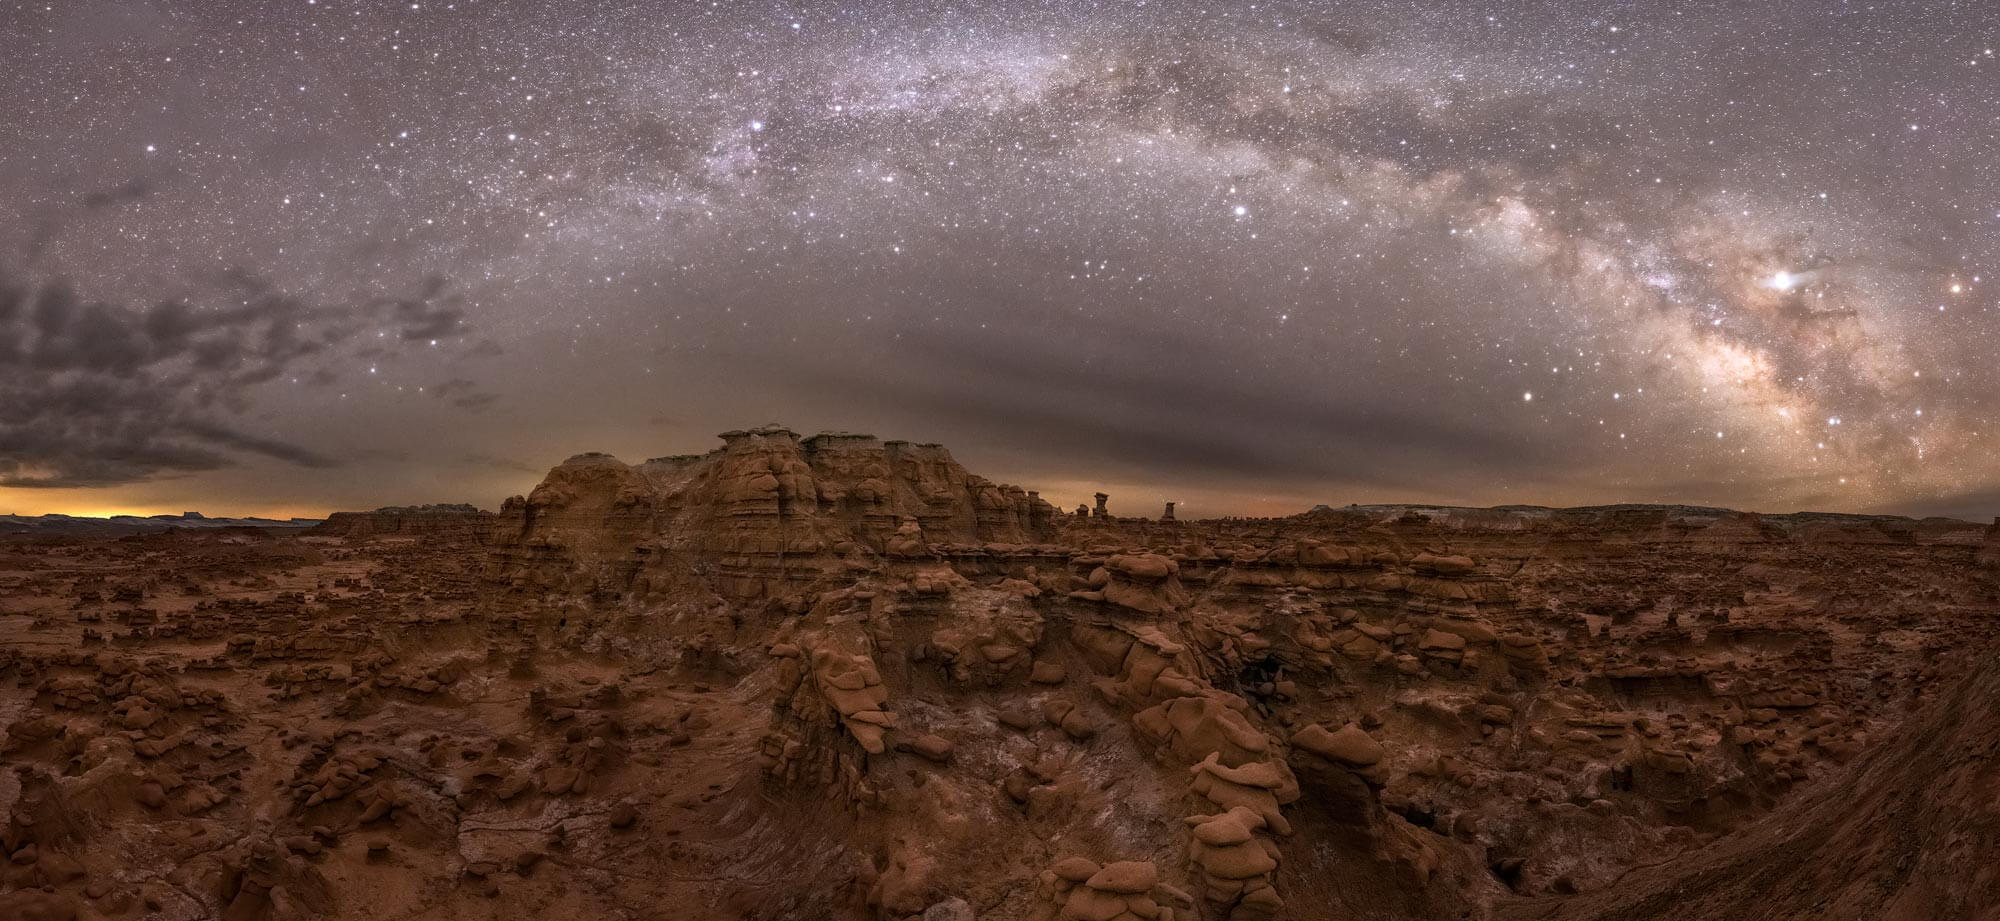 Central Utah 2020 Night Photography Workshop